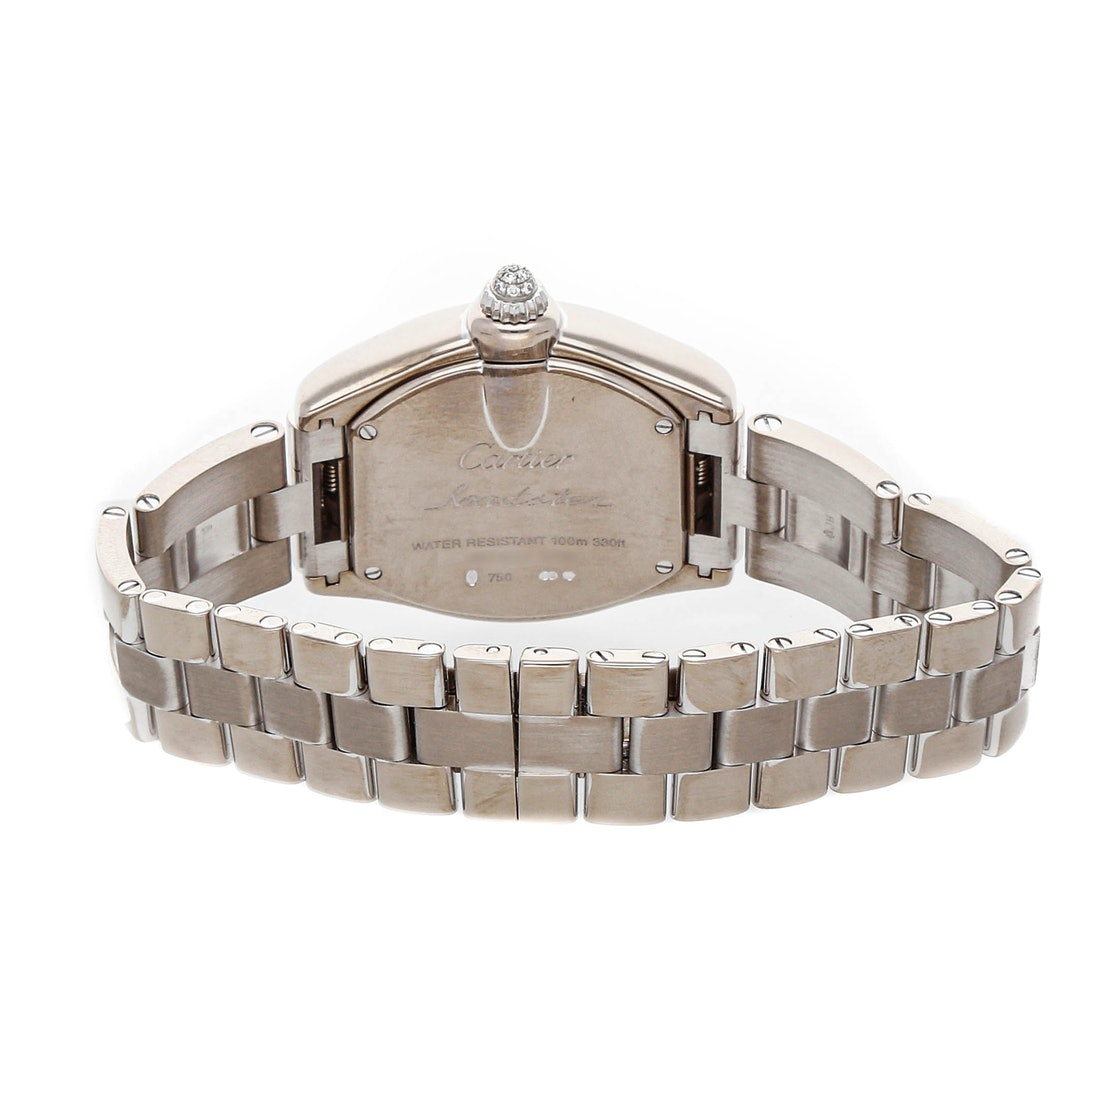 Cartier Roadster Small Model WE5002X2